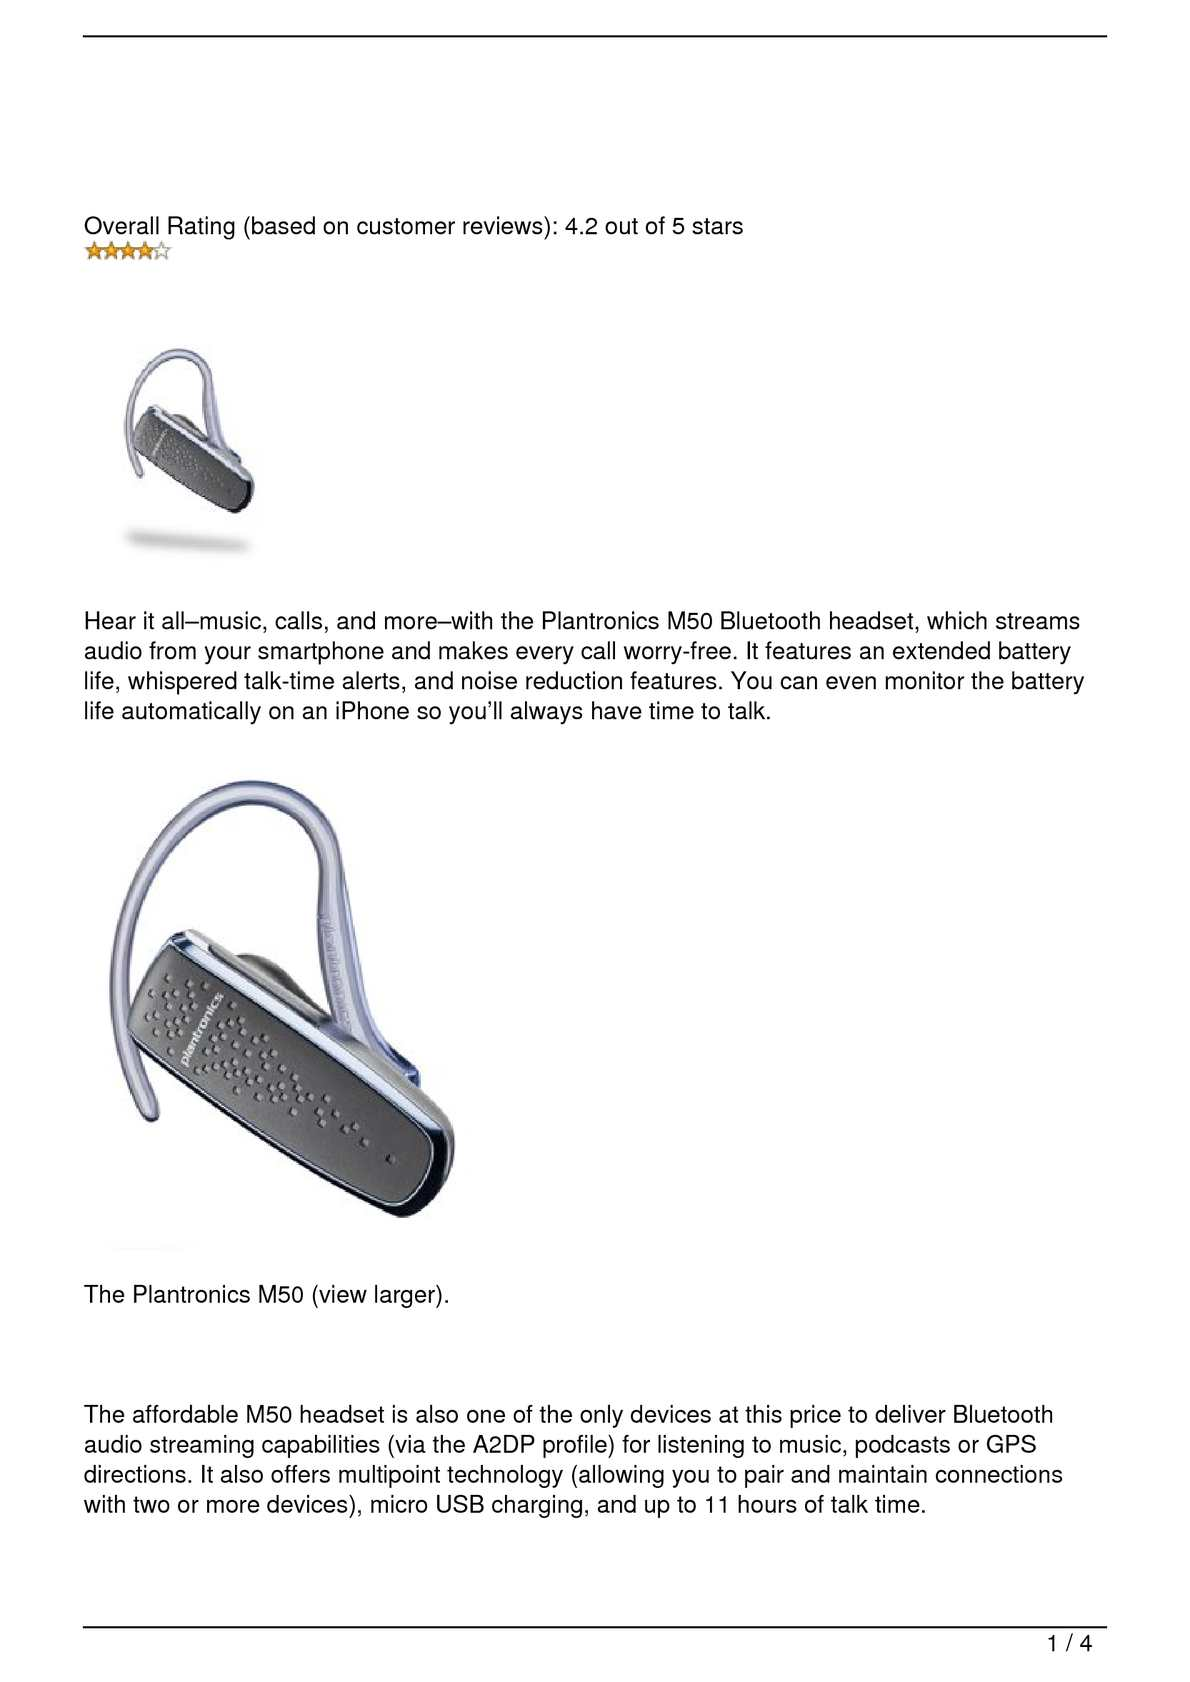 Calamo Plantronics M50 8211 Bluetooth Headset Automatic Switching For Battery Usb Power Connection